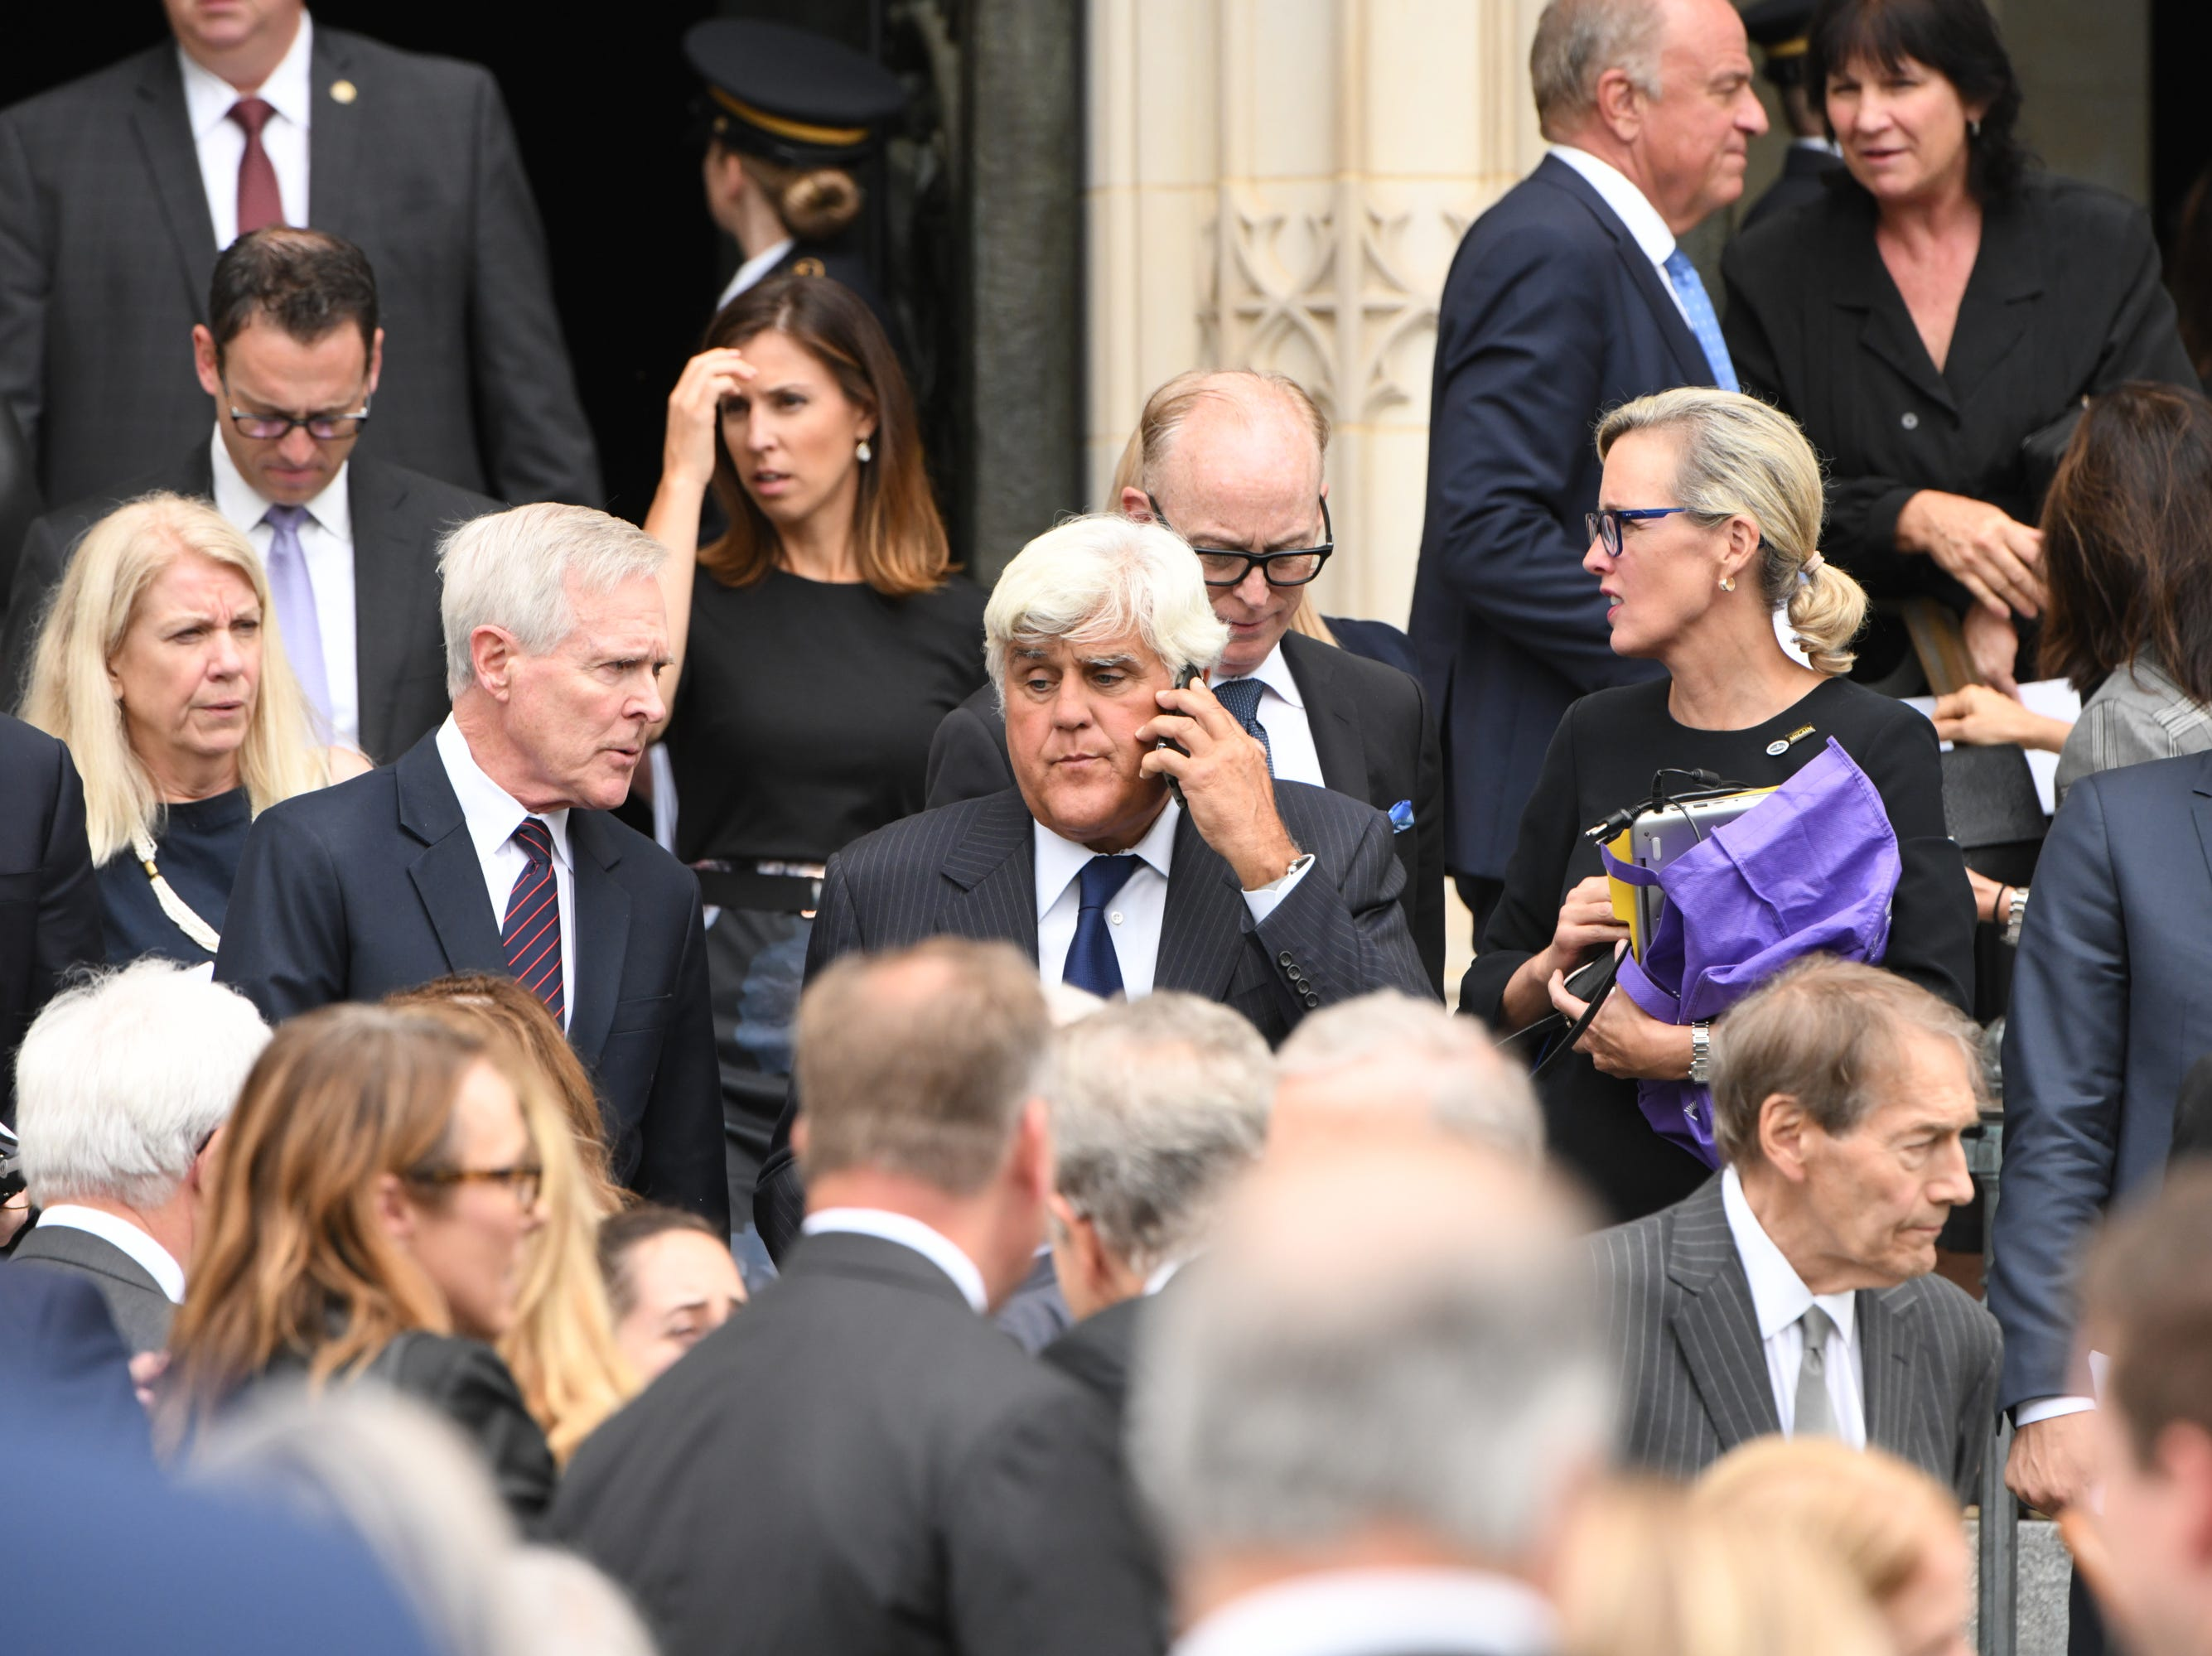 ay Leno makes a phone call as he leaves the memorial service for John McCain.